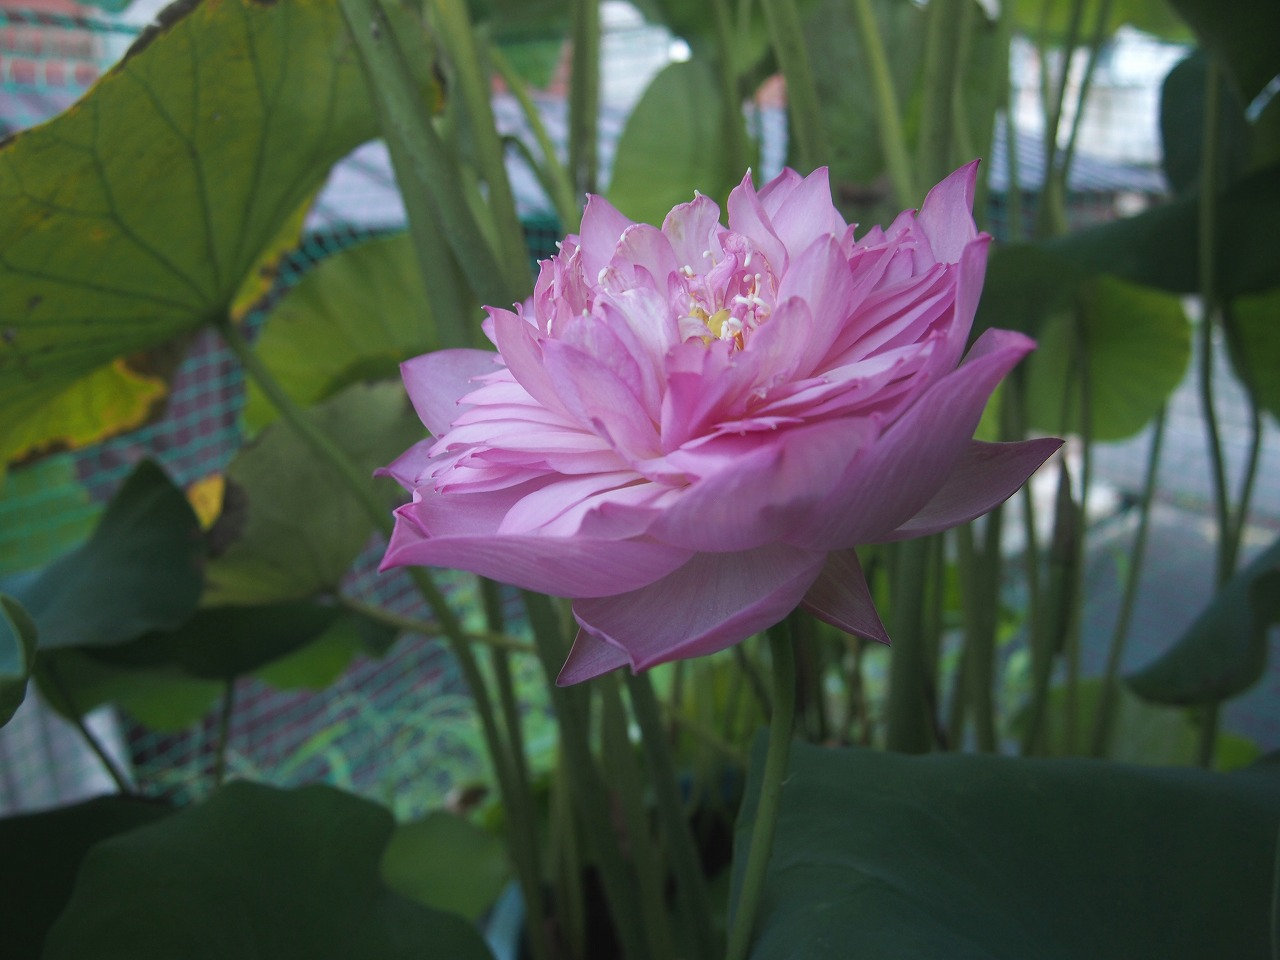 20160821-Lotus_Hishinko-O06.jpg